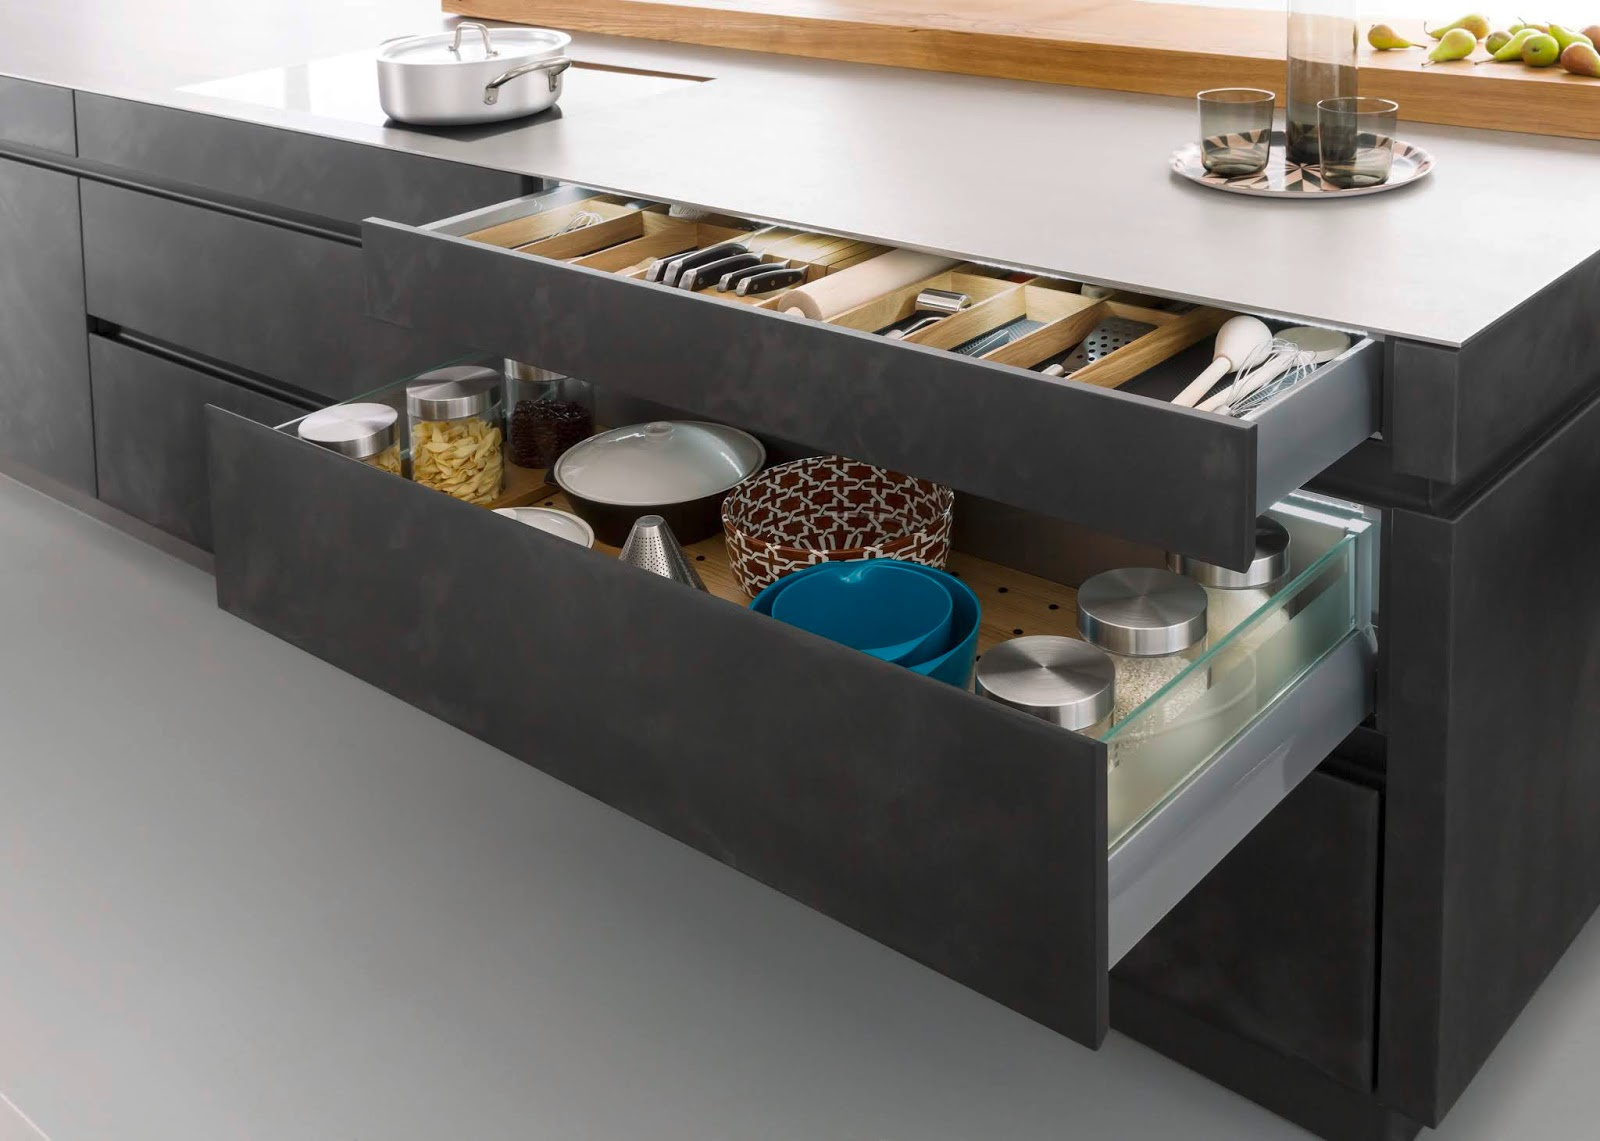 Storage system in the kitchen